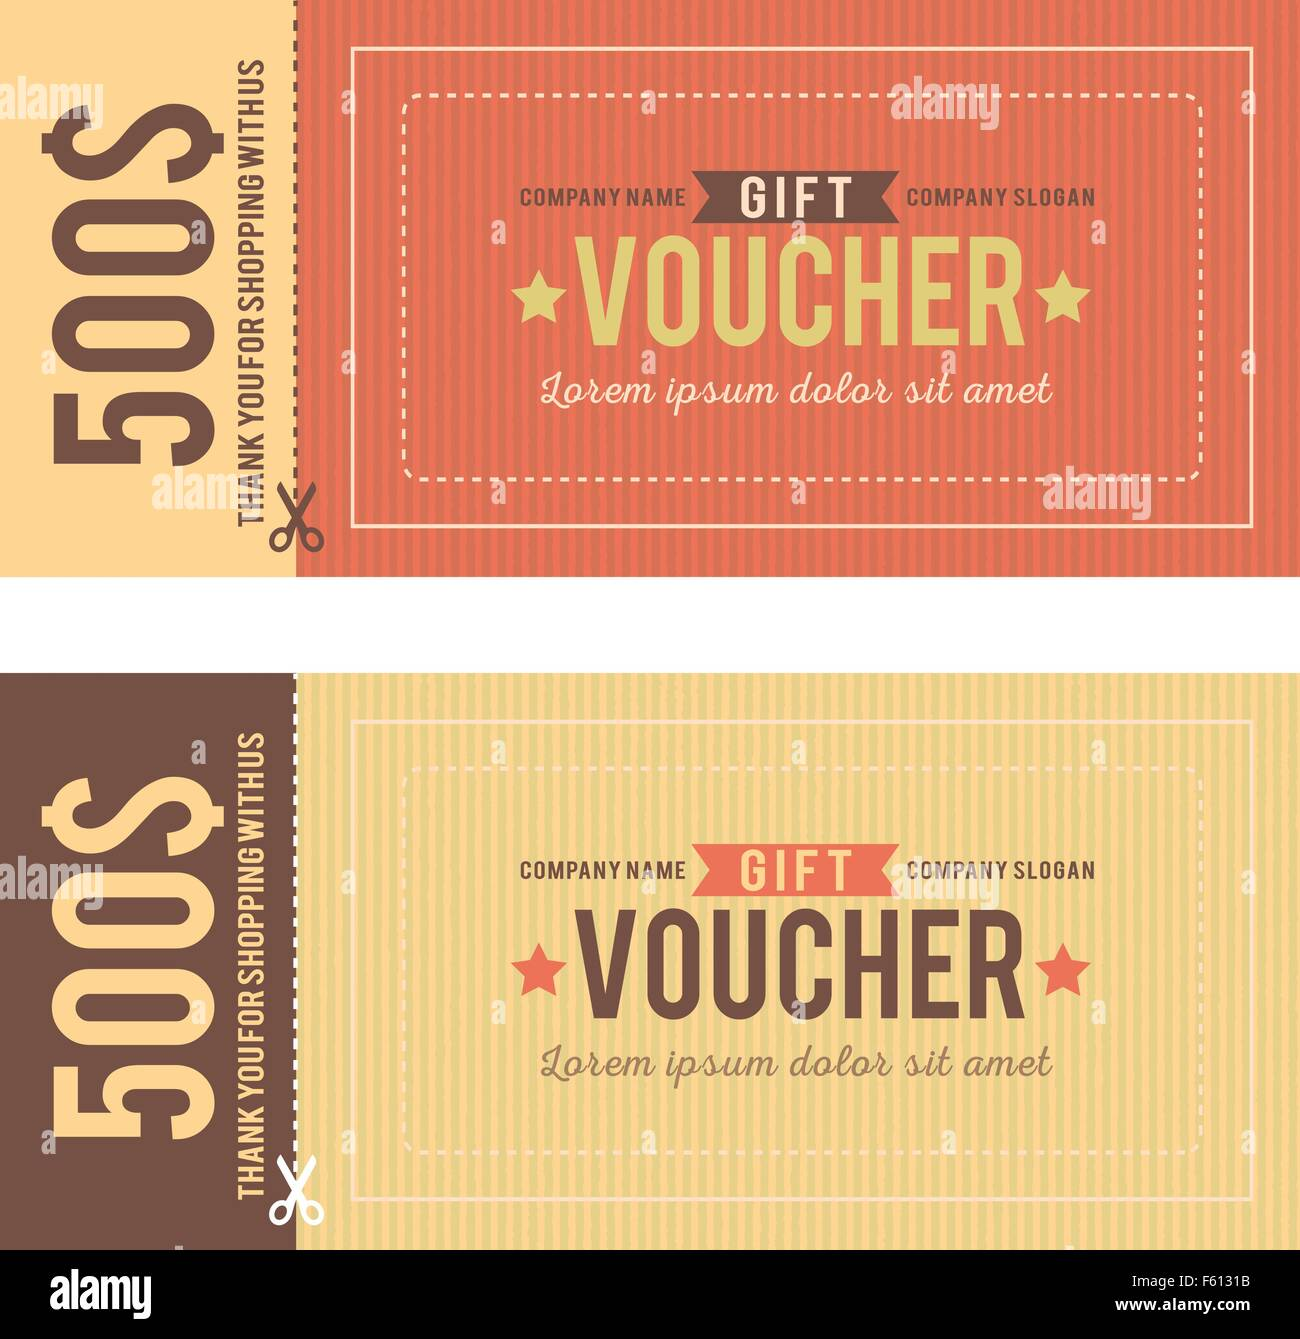 Vintage gift voucher vector template stock vector art vintage gift voucher vector template yadclub Image collections